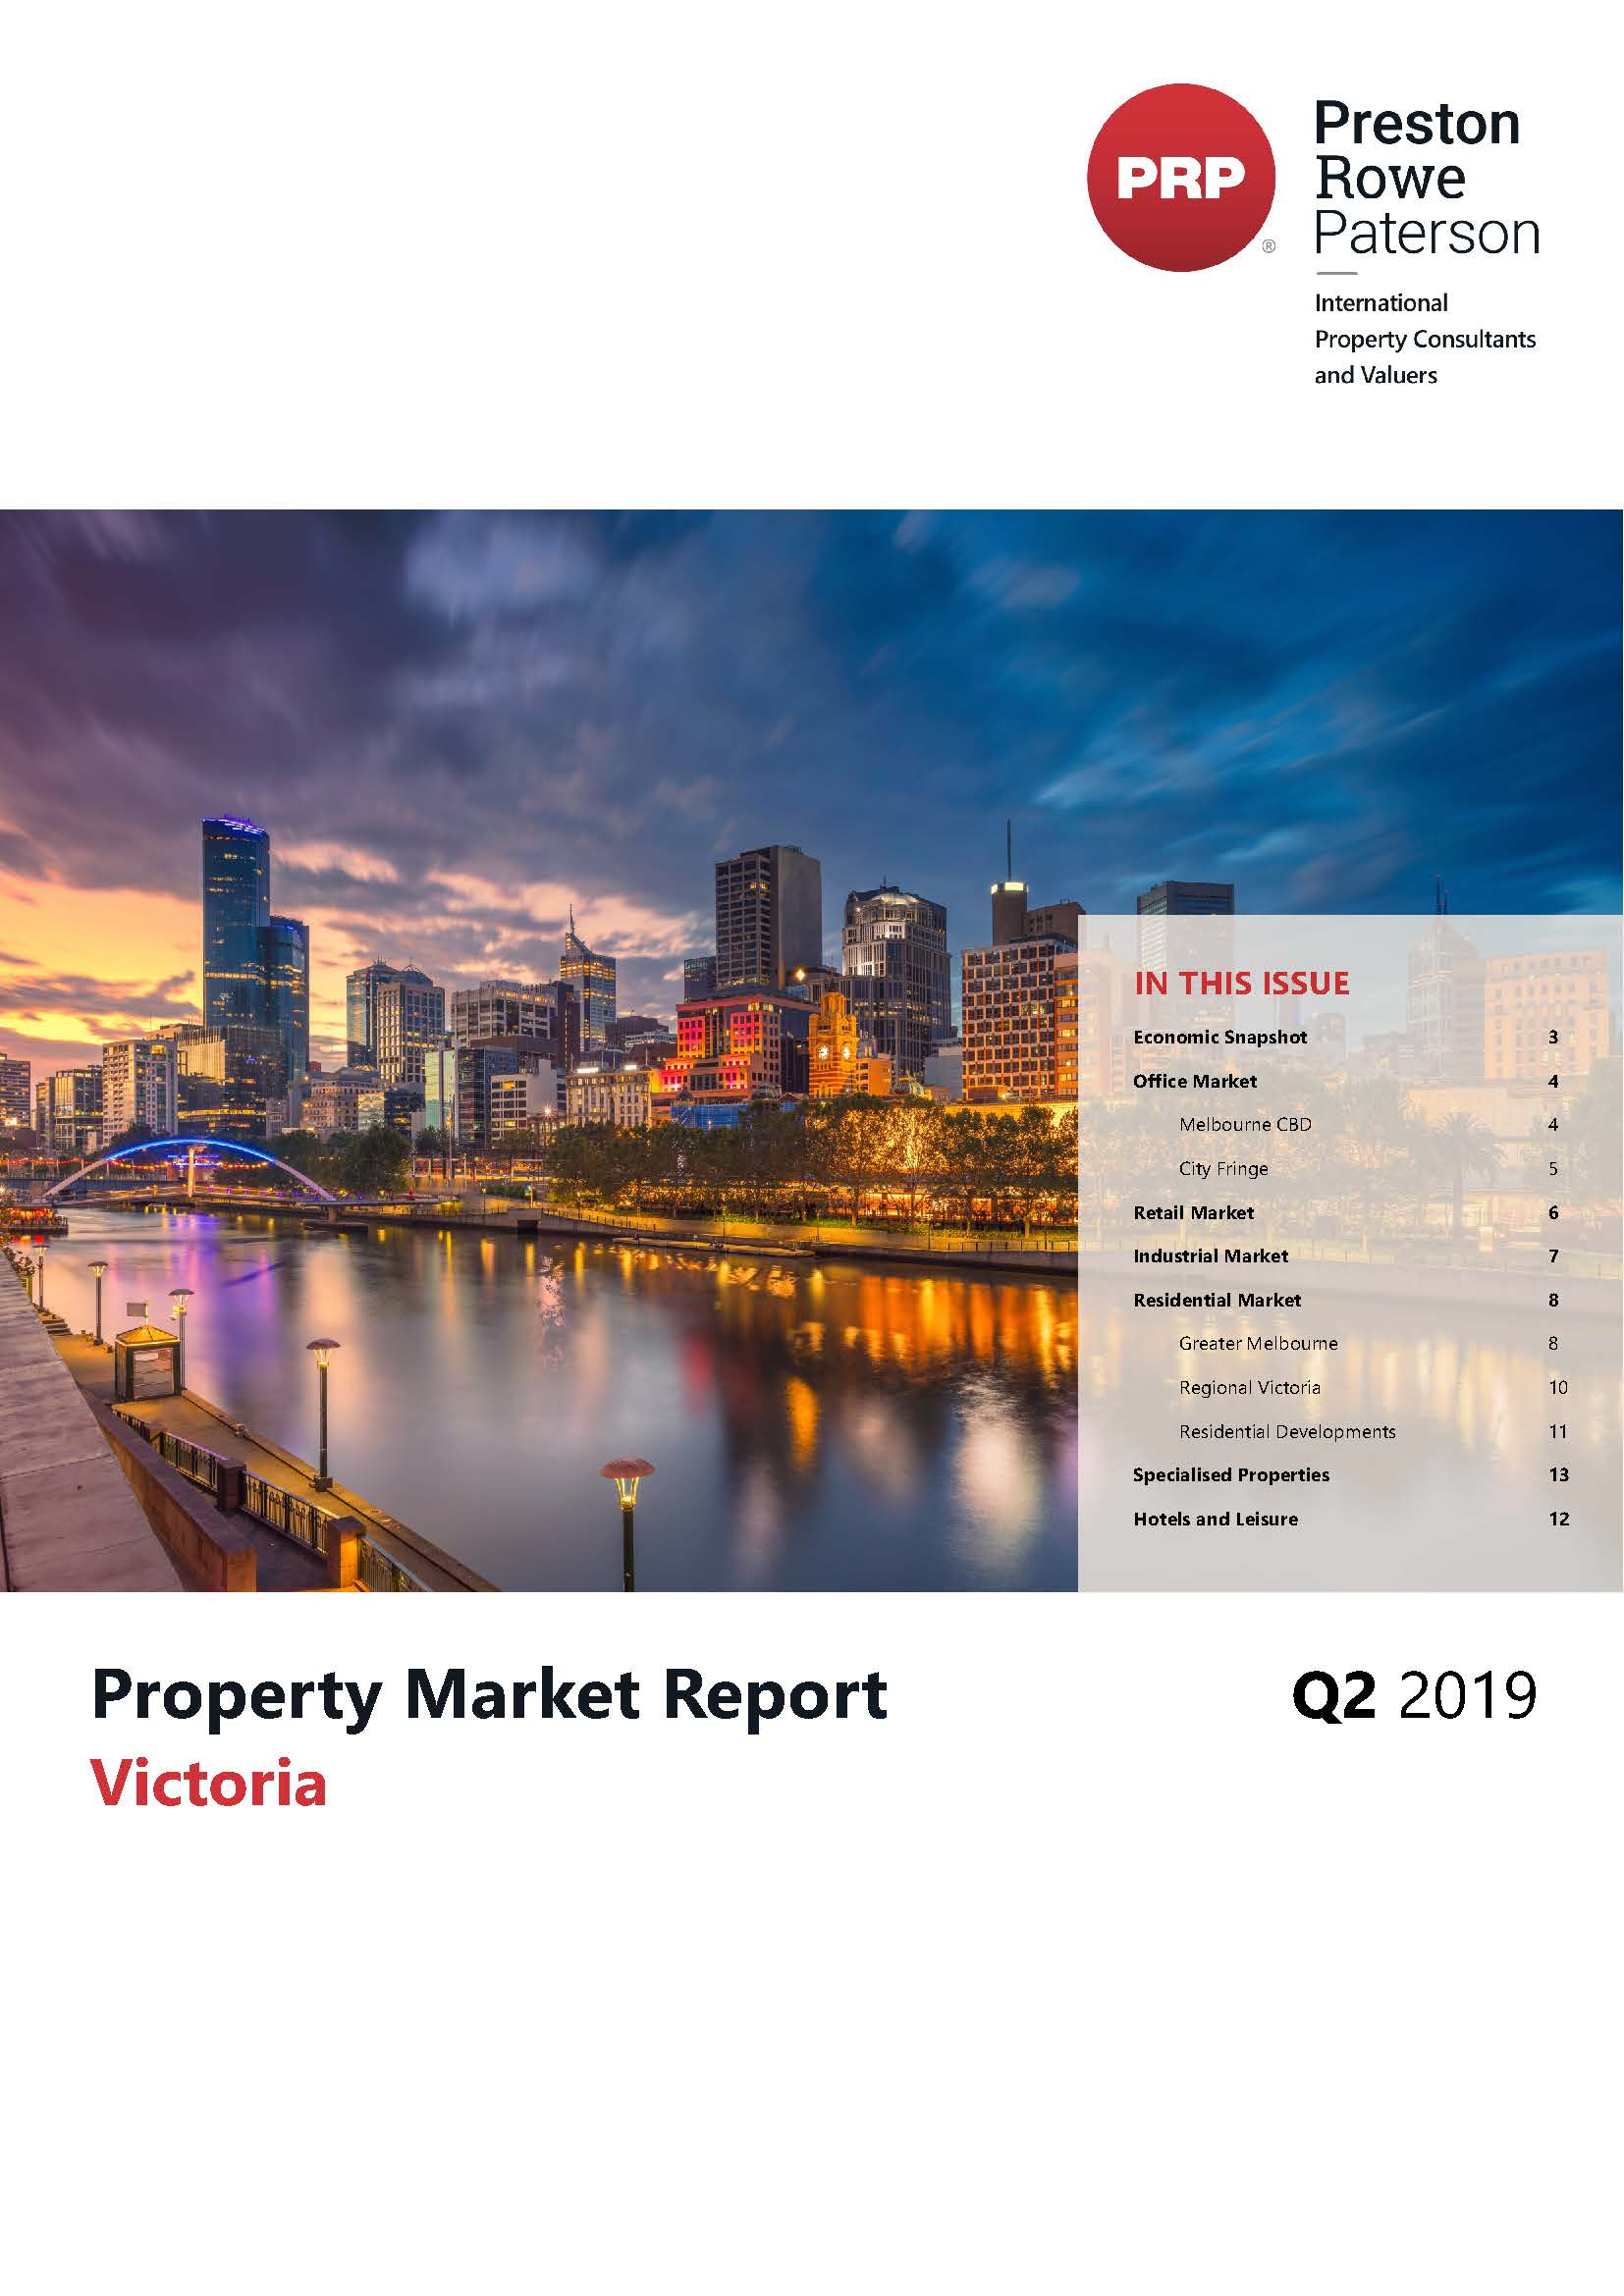 VIC Property Market Report Q2 2019